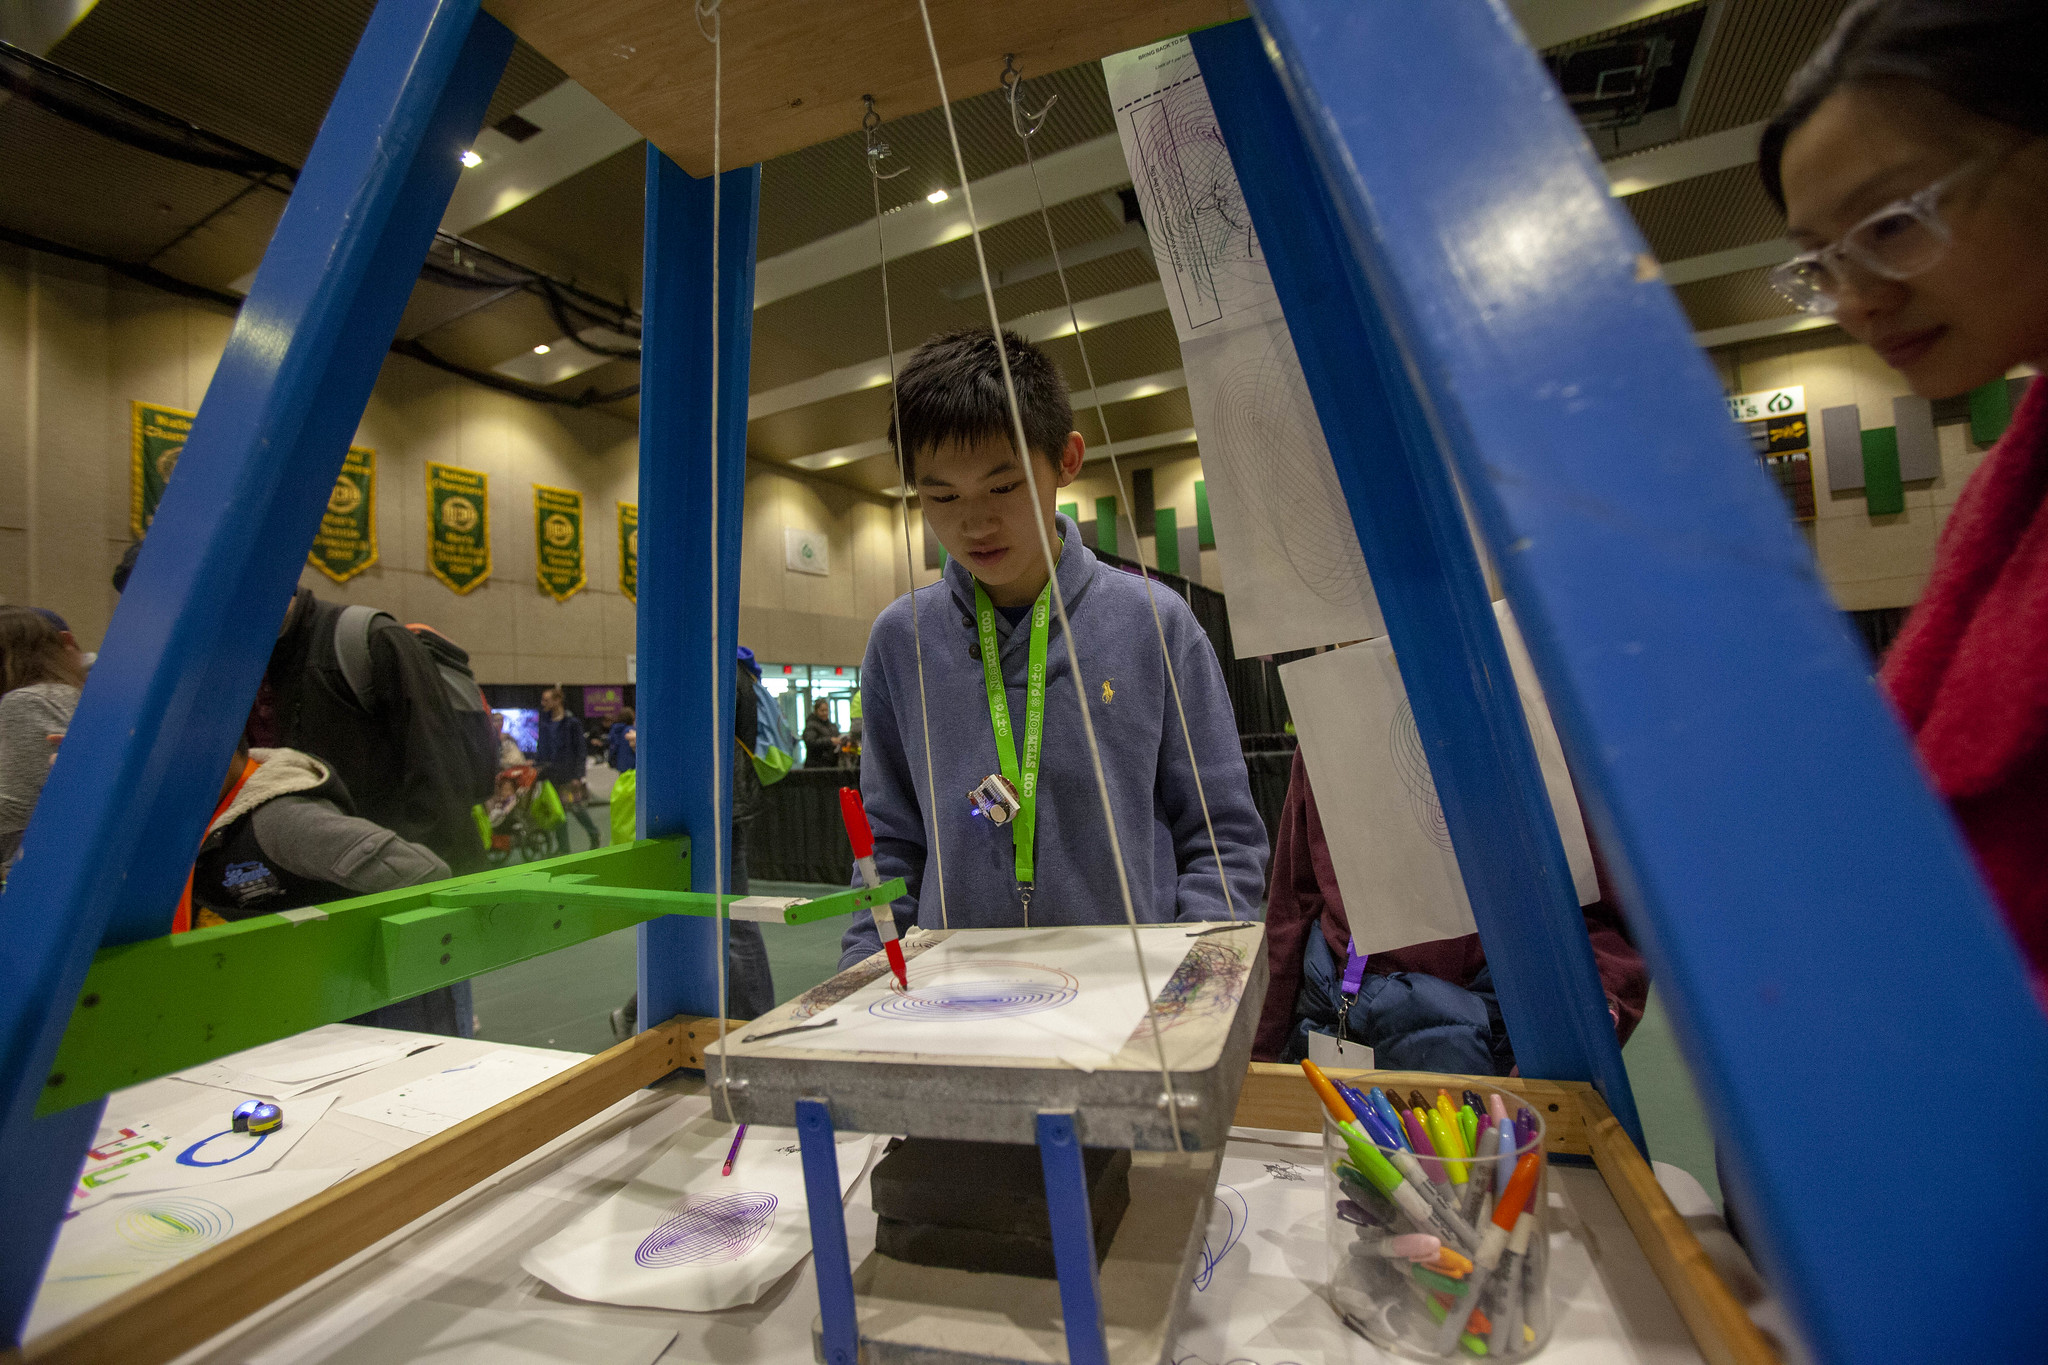 Fourth Annual STEMCON Draws Crowds to College of DuPage 100